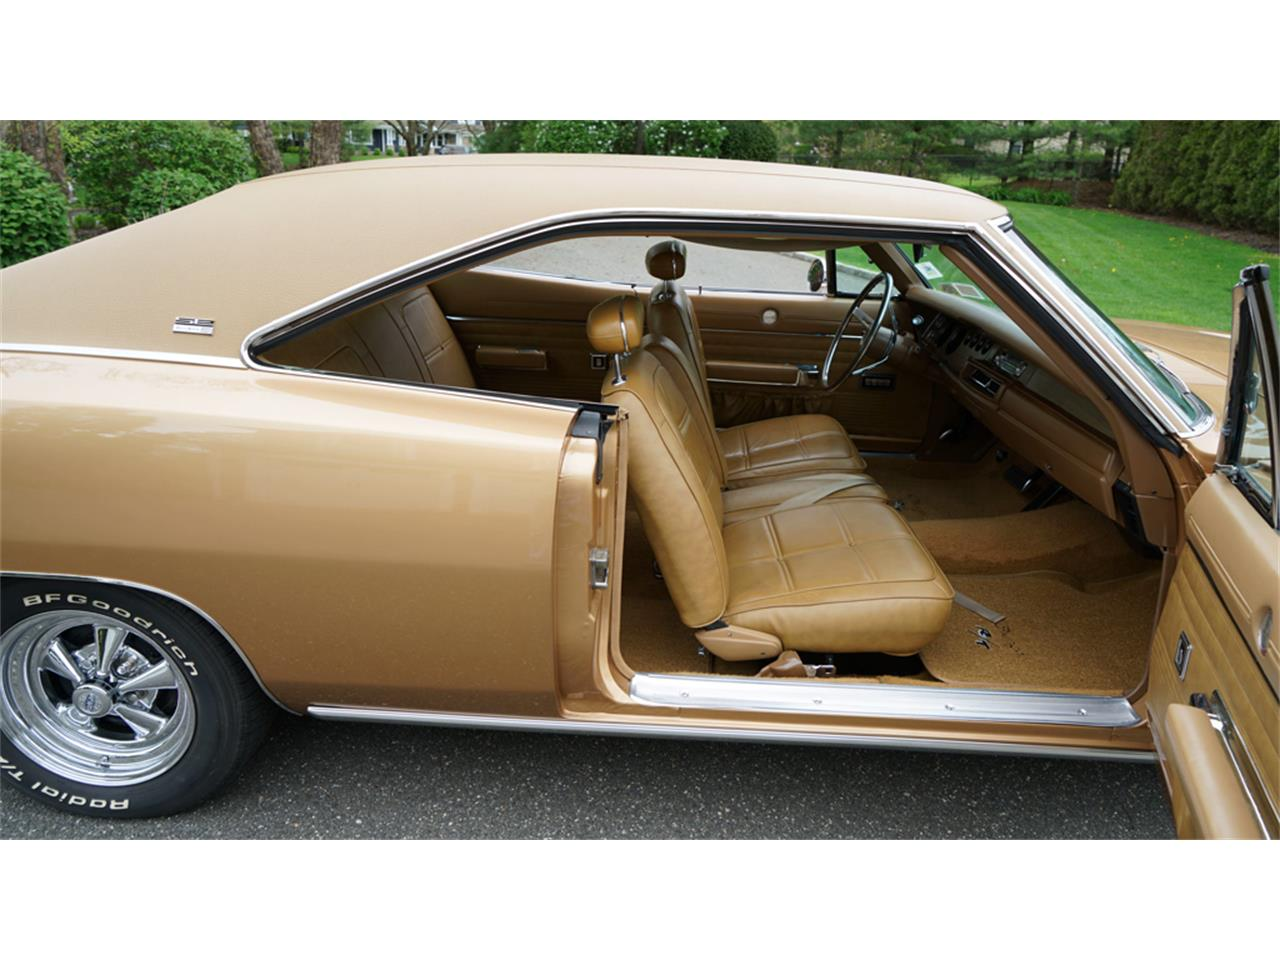 Large Picture of 1969 Charger R/T located in Old Bethpage New York - $83,900.00 - Q1UM